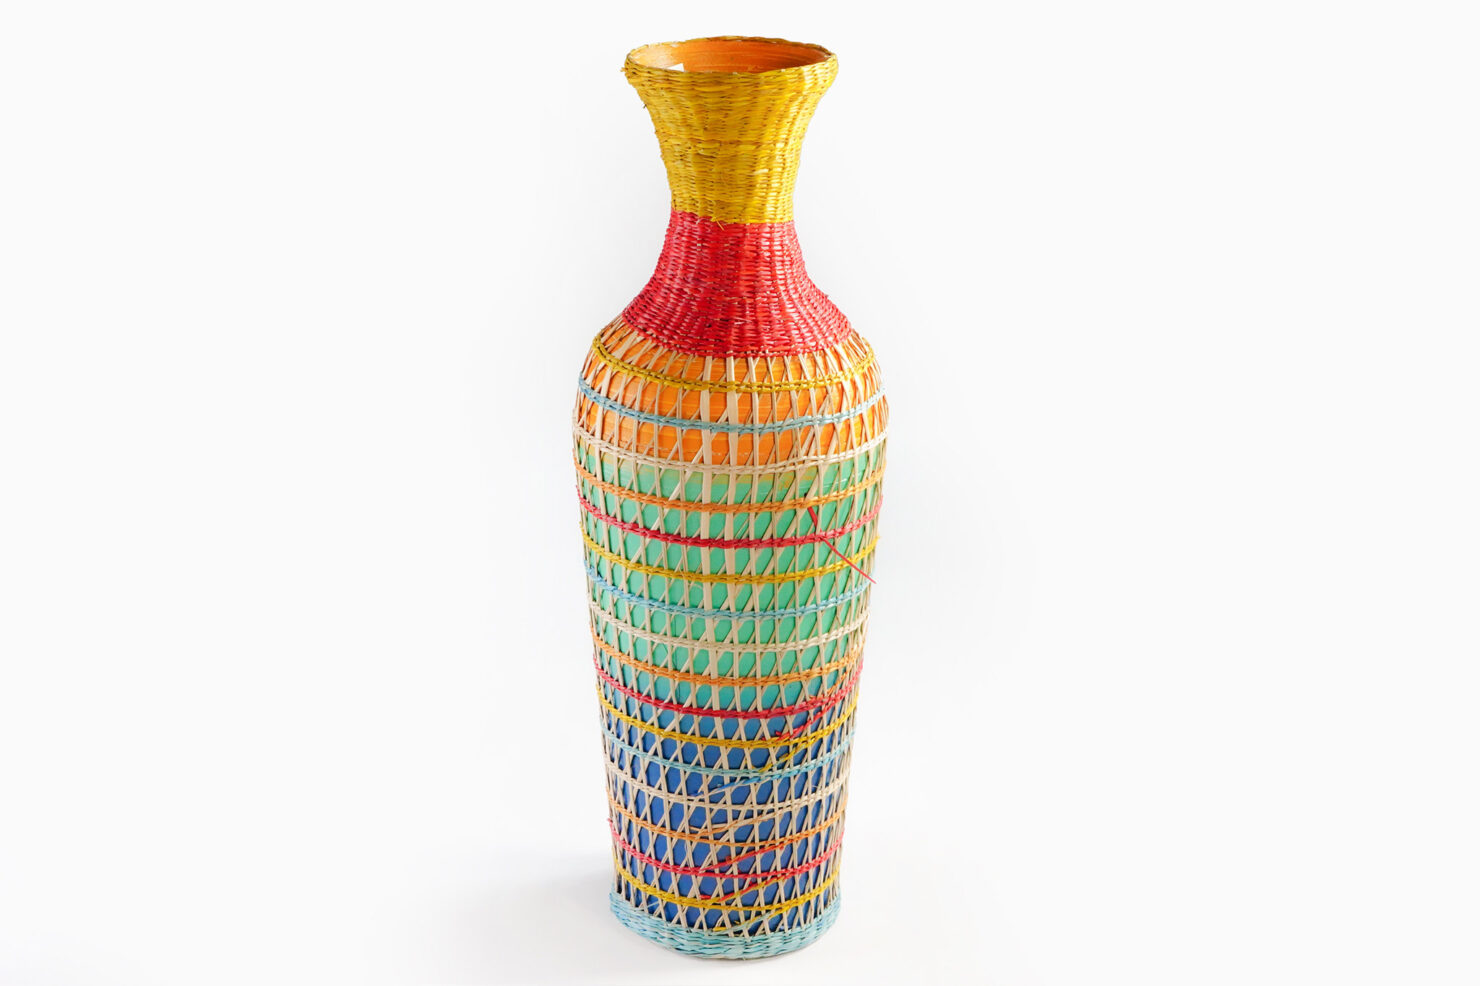 COLORED BRAID VASE 32 - BAZAR DE LUXE